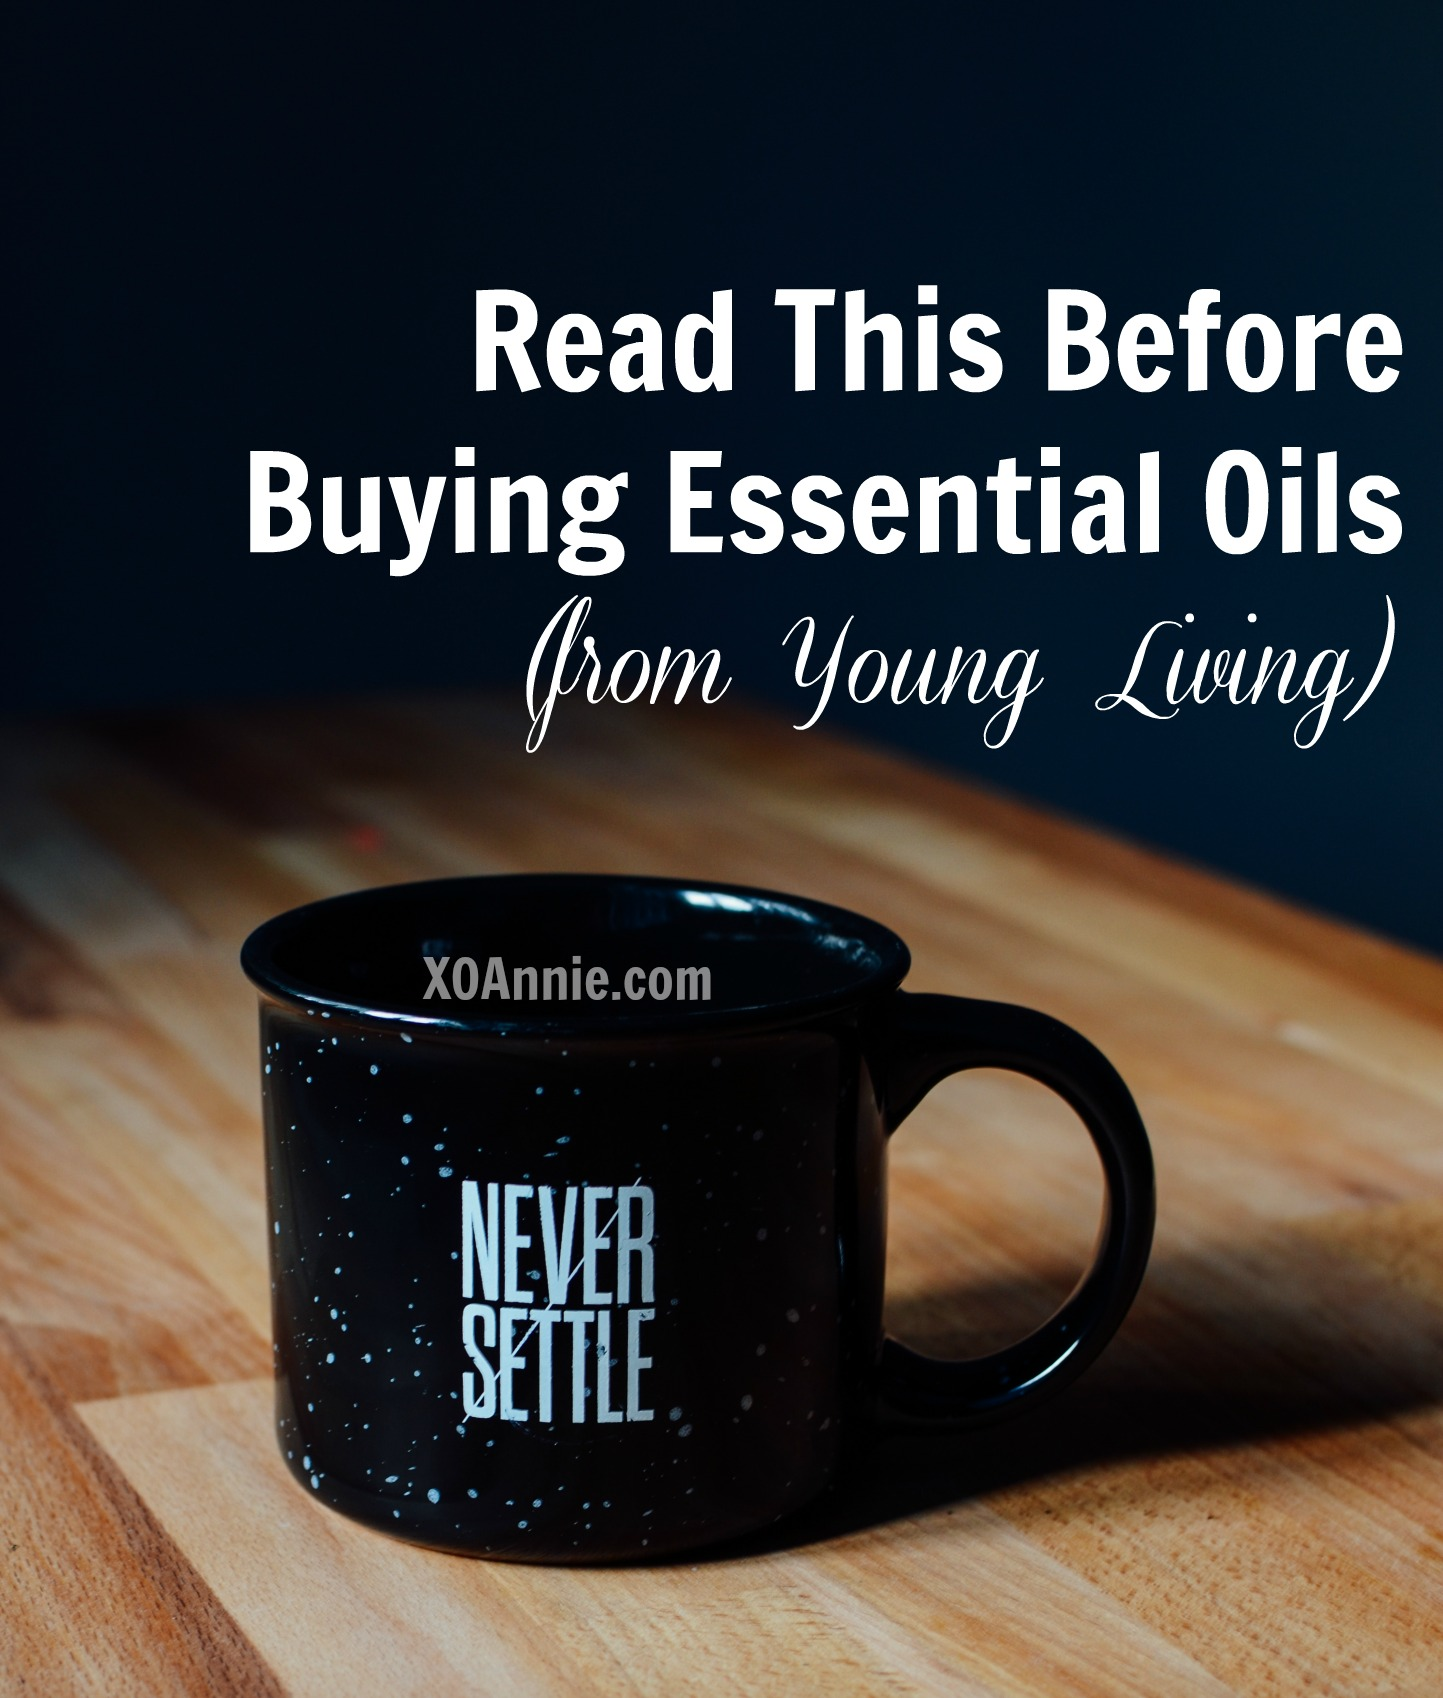 Read This Before Buying Essential Oils